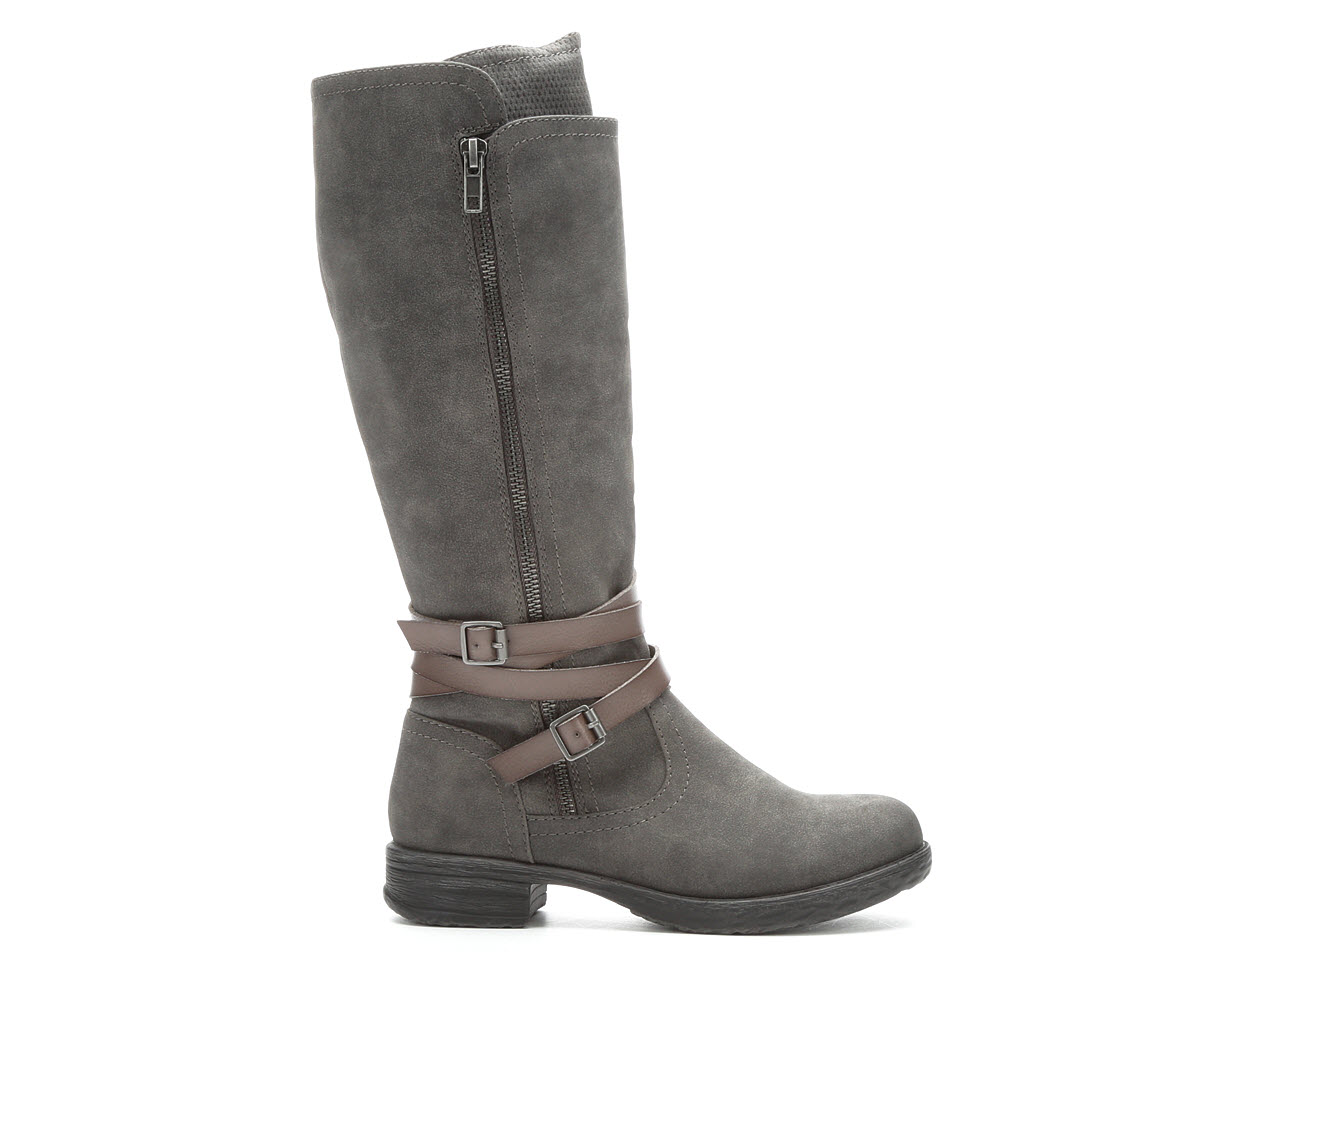 Jellypop Felicia Women's Boot (Gray Faux Leather)